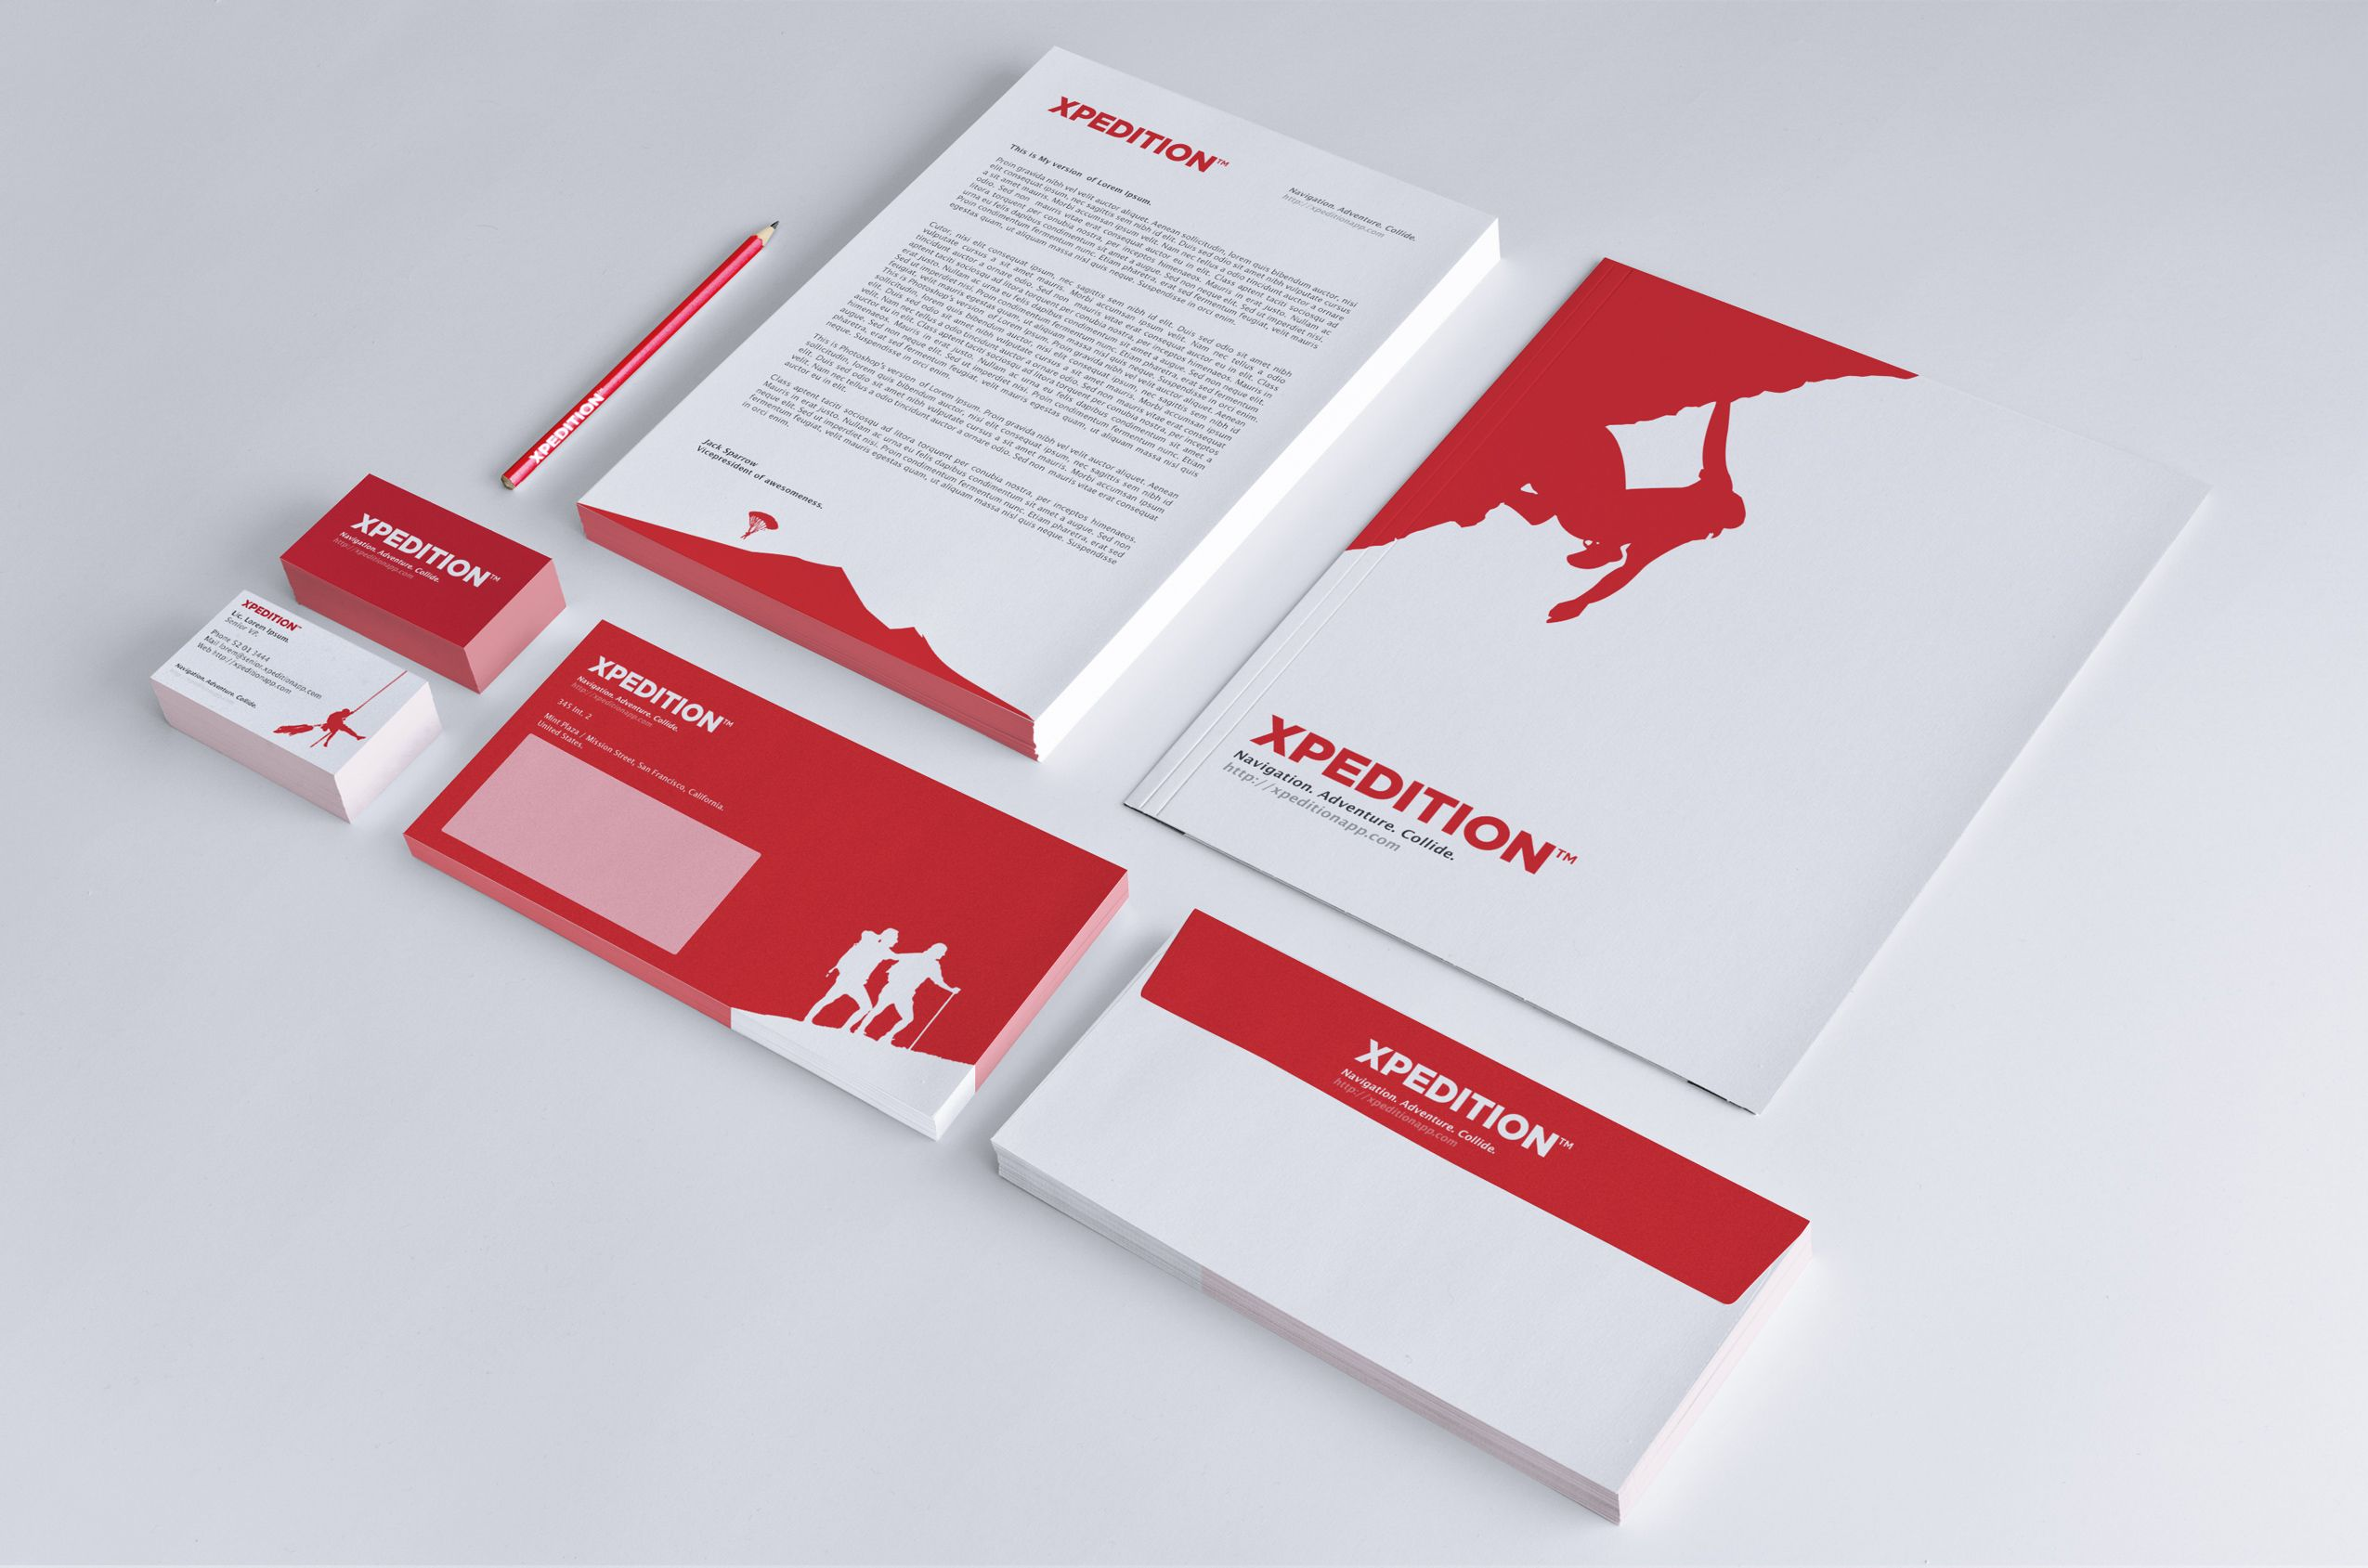 XPEDITION print identity mockup envelope business card